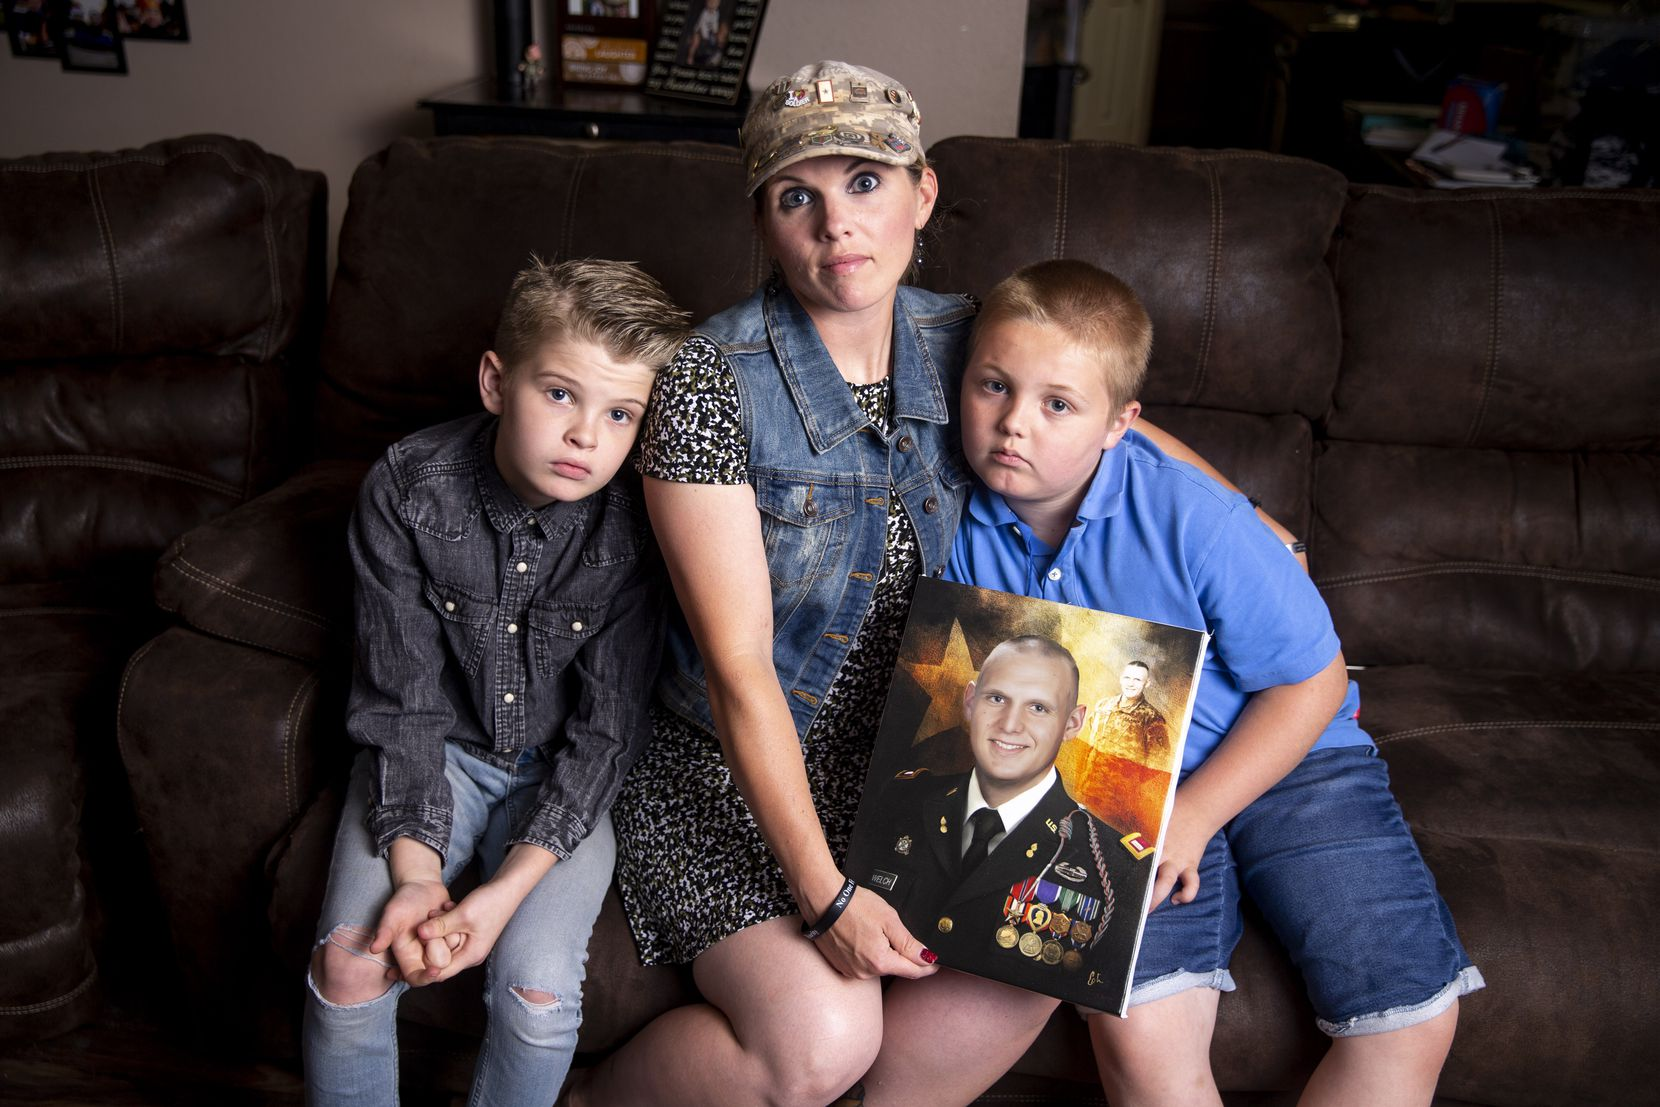 Becky Welch poses with her sons Aaden Welch, 11, left, and Robby Welch, 9, with a portrait of Army 1st Lt. Robert Welch, in their Wylie, Texas home Friday, May 31, 2019.